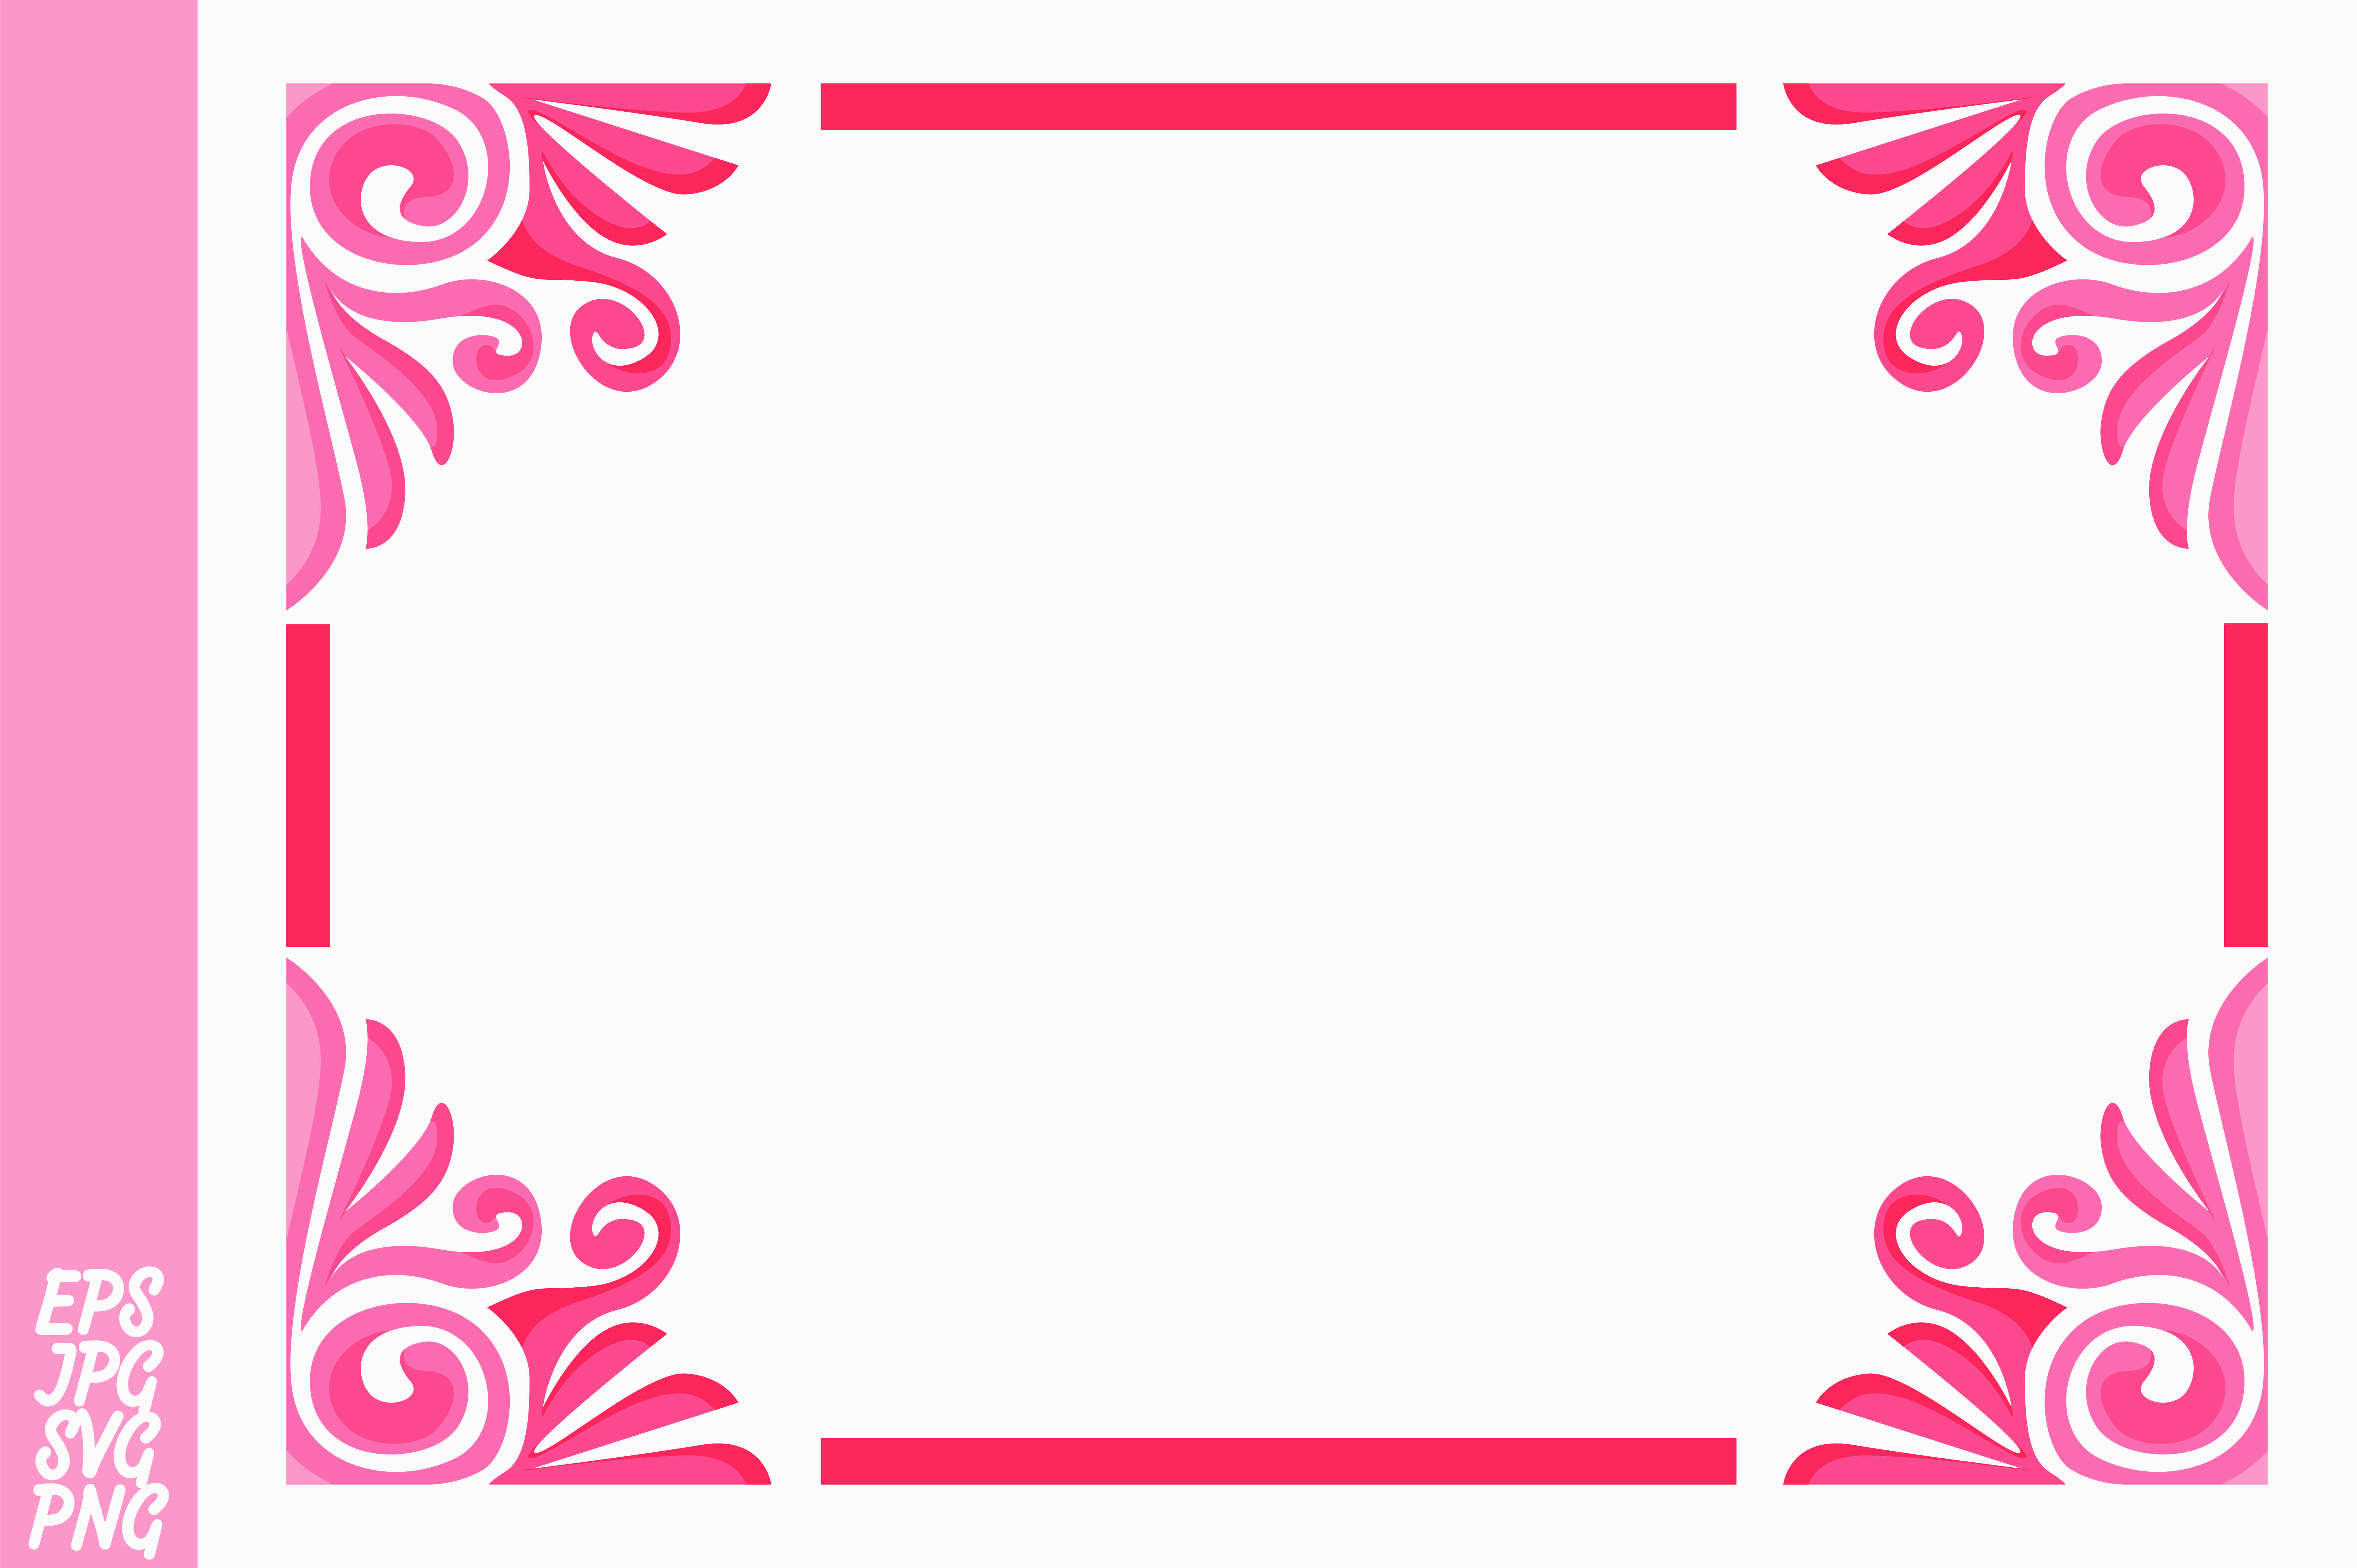 Download Free Pink Ornament Border Vector Graphic By Arief Sapta Adjie for Cricut Explore, Silhouette and other cutting machines.